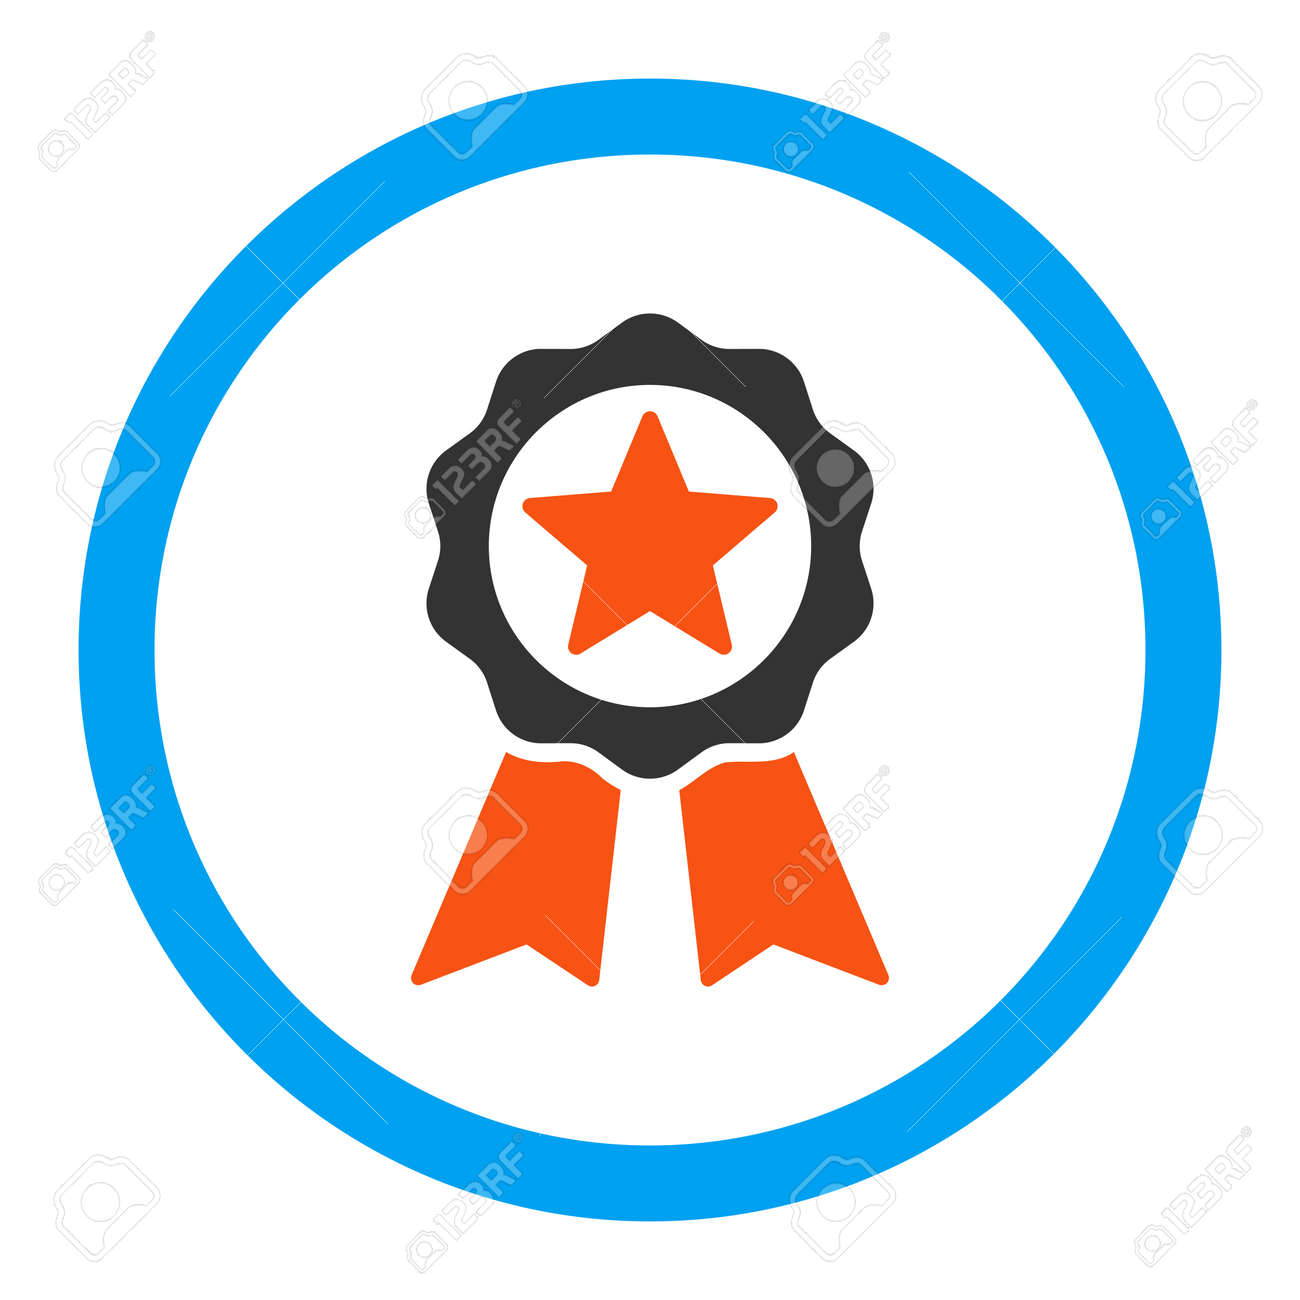 certification seal vector icon style is flat rounded symbol rh 123rf com seal victory age of wonder 3 sell vector art